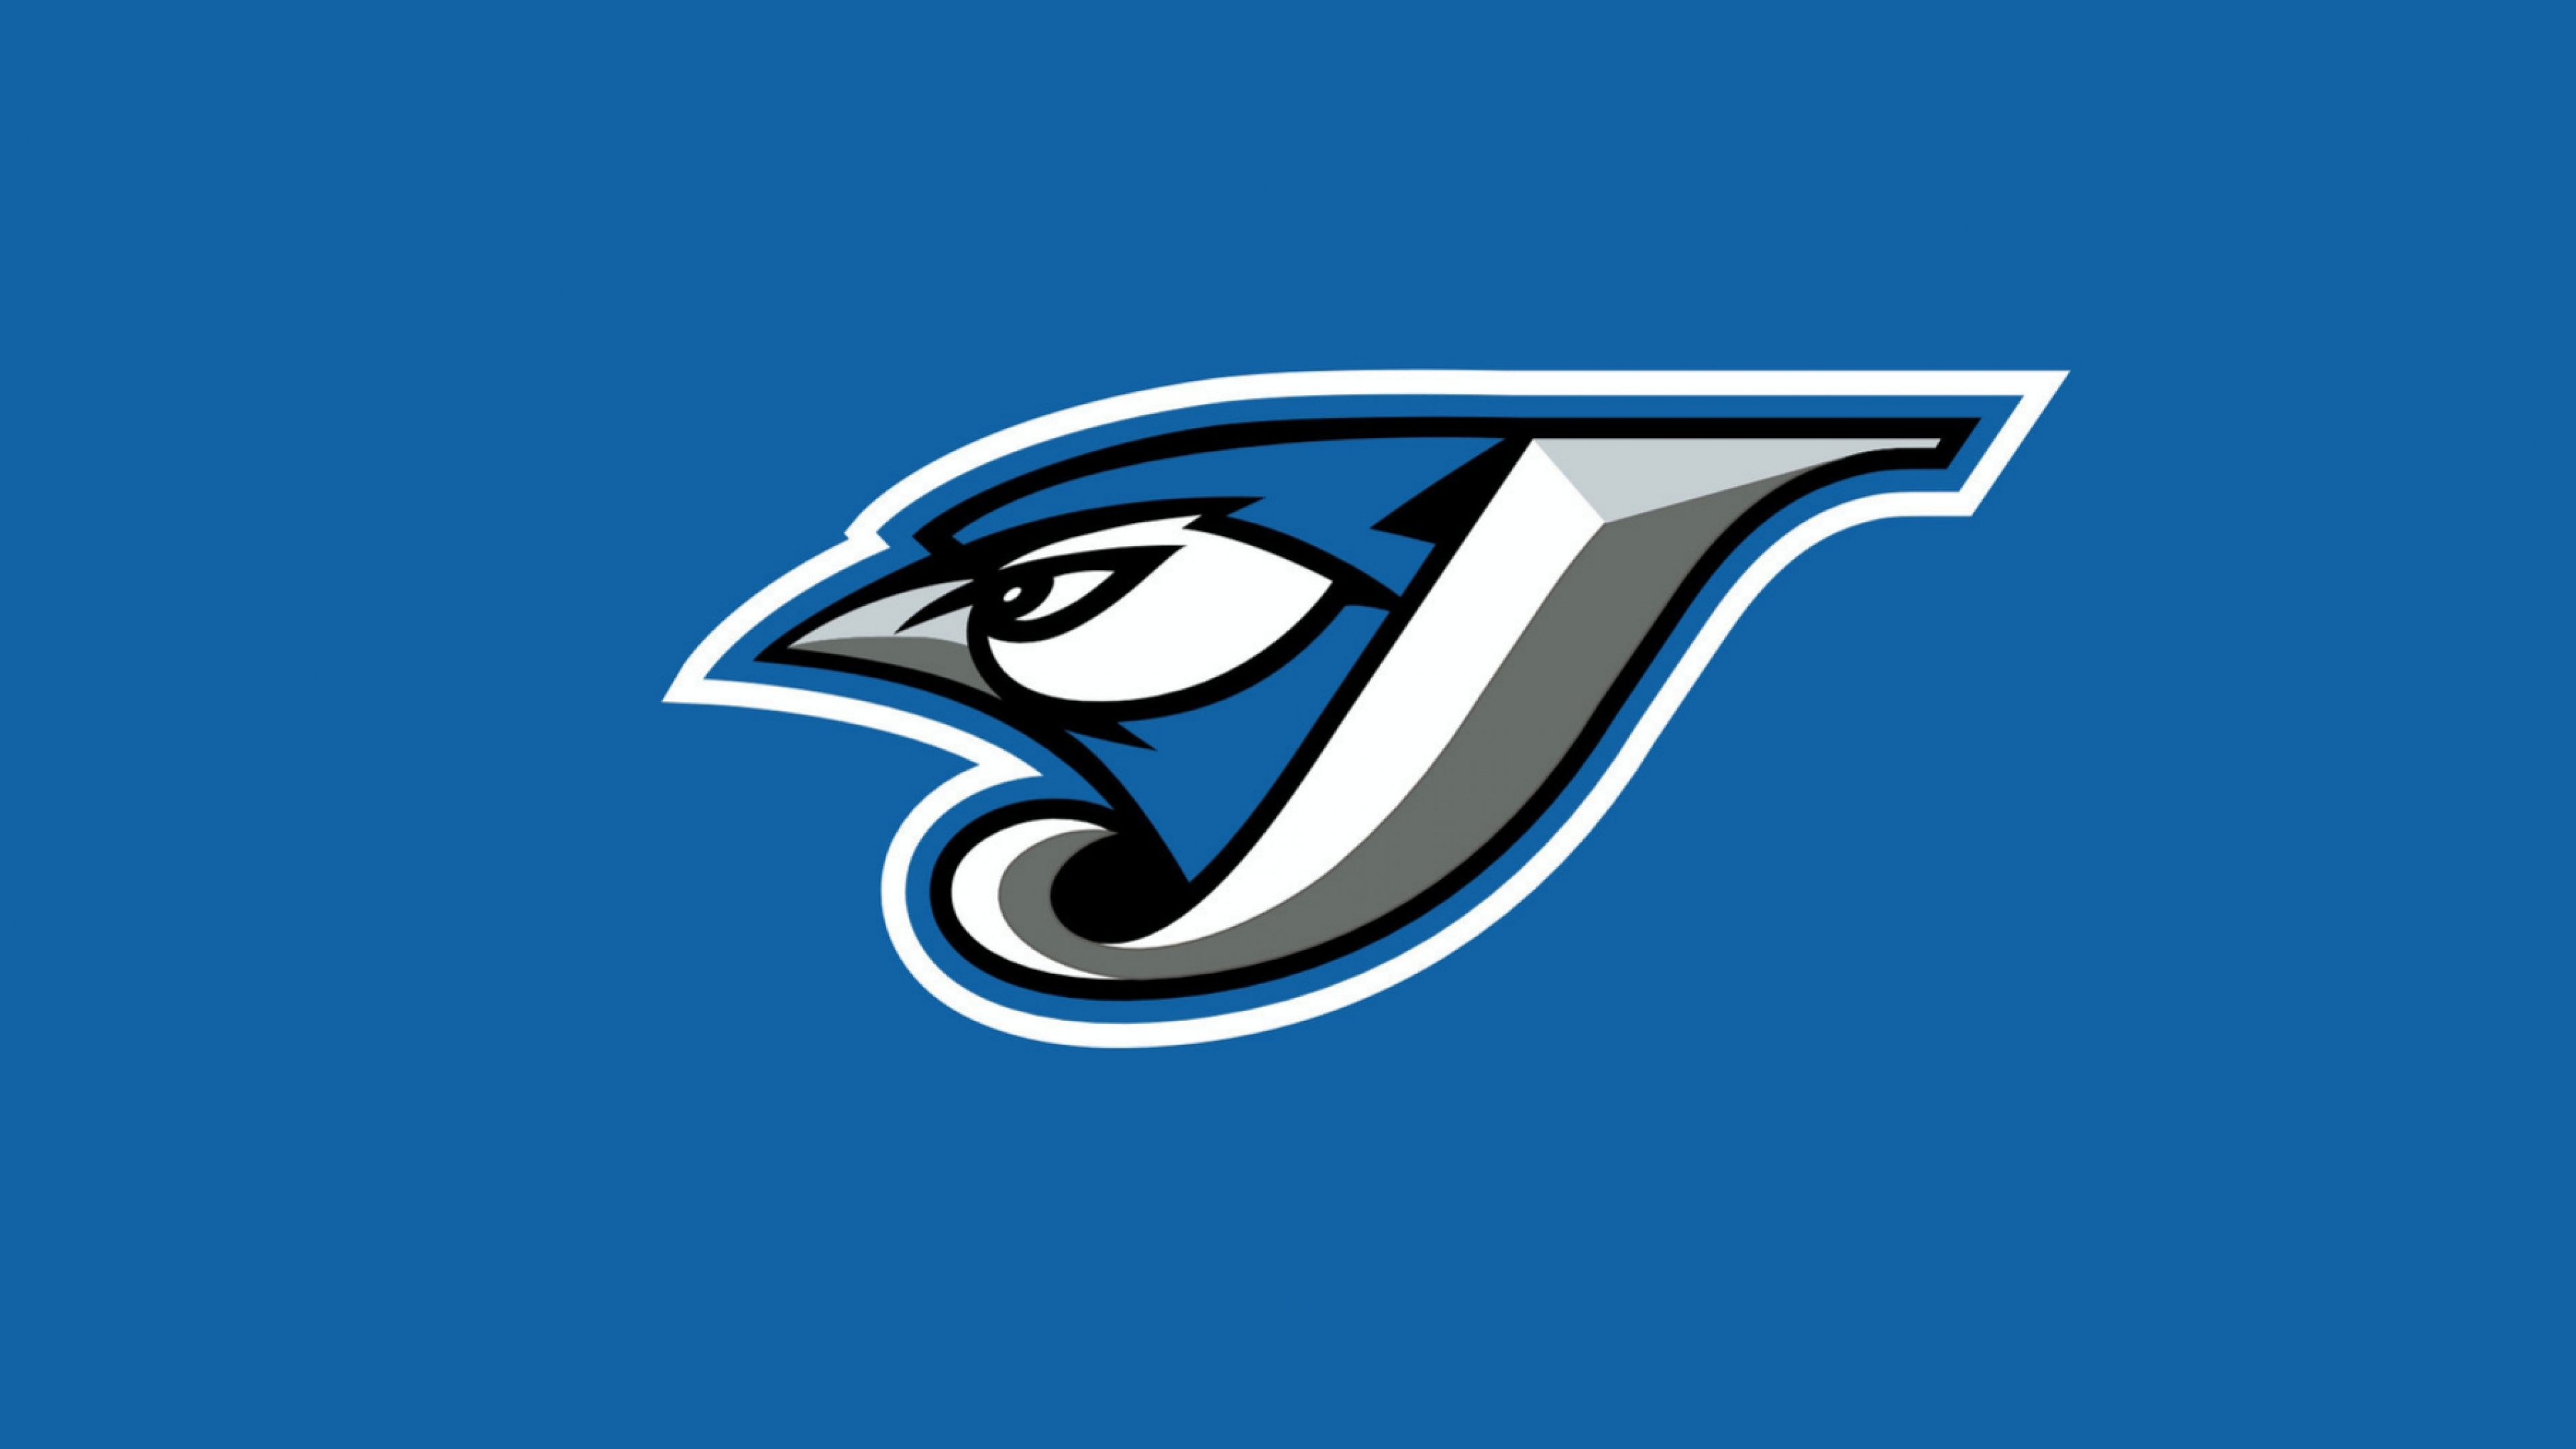 Toronto Blue Jays HD Sports 4k Wallpapers Images Backgrounds